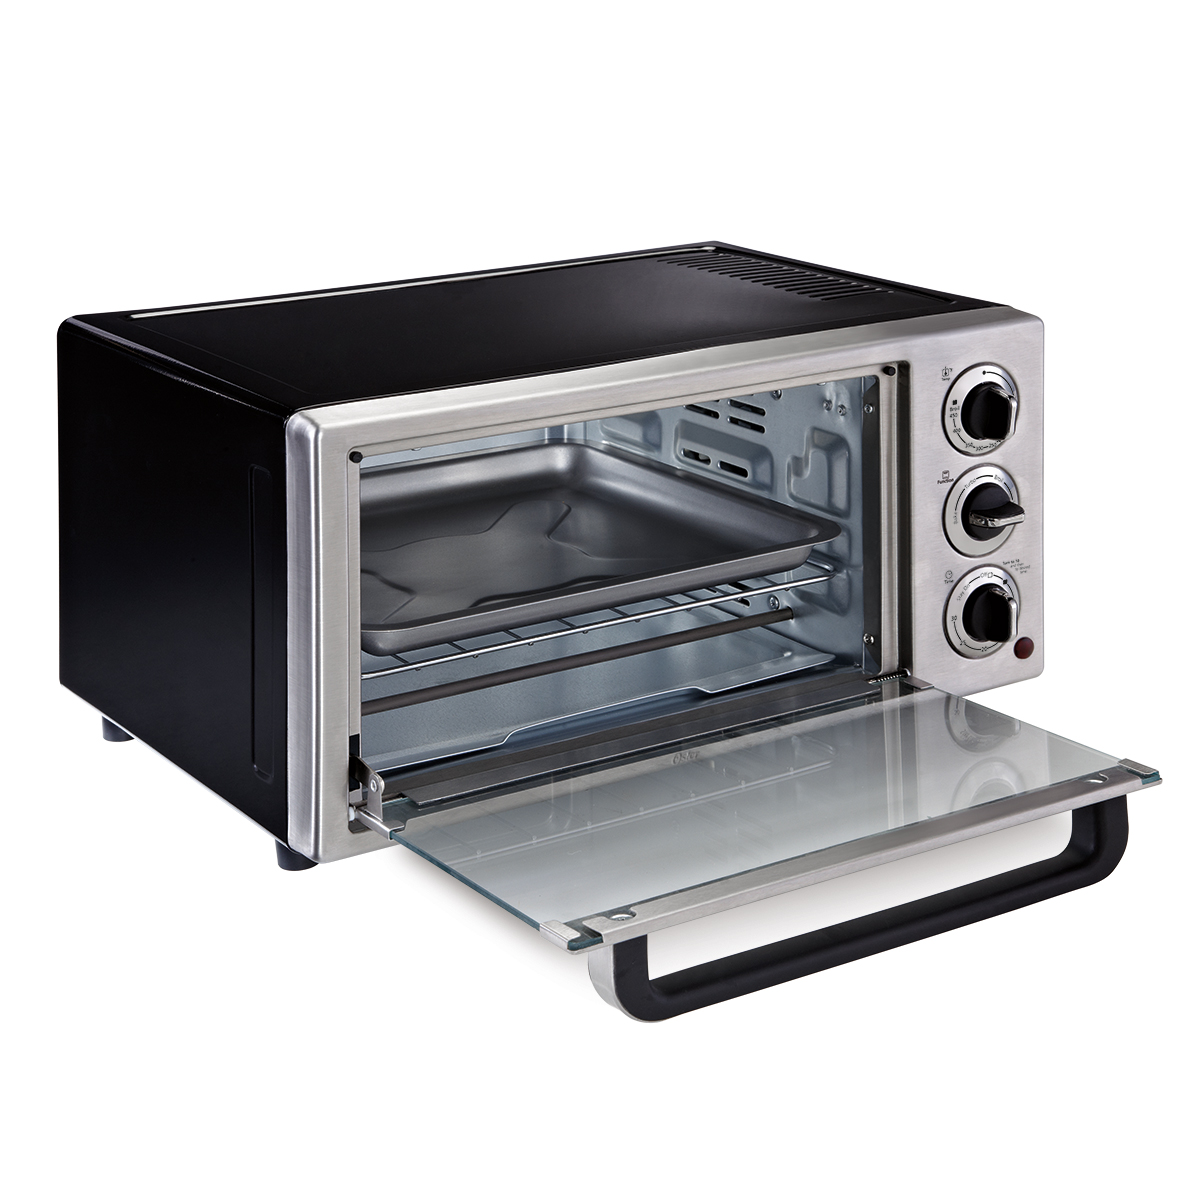 Countertop Oven Price : Oster? 6-Slice Convection Countertop Oven, Stainless Steel TSSTTVF815 ...